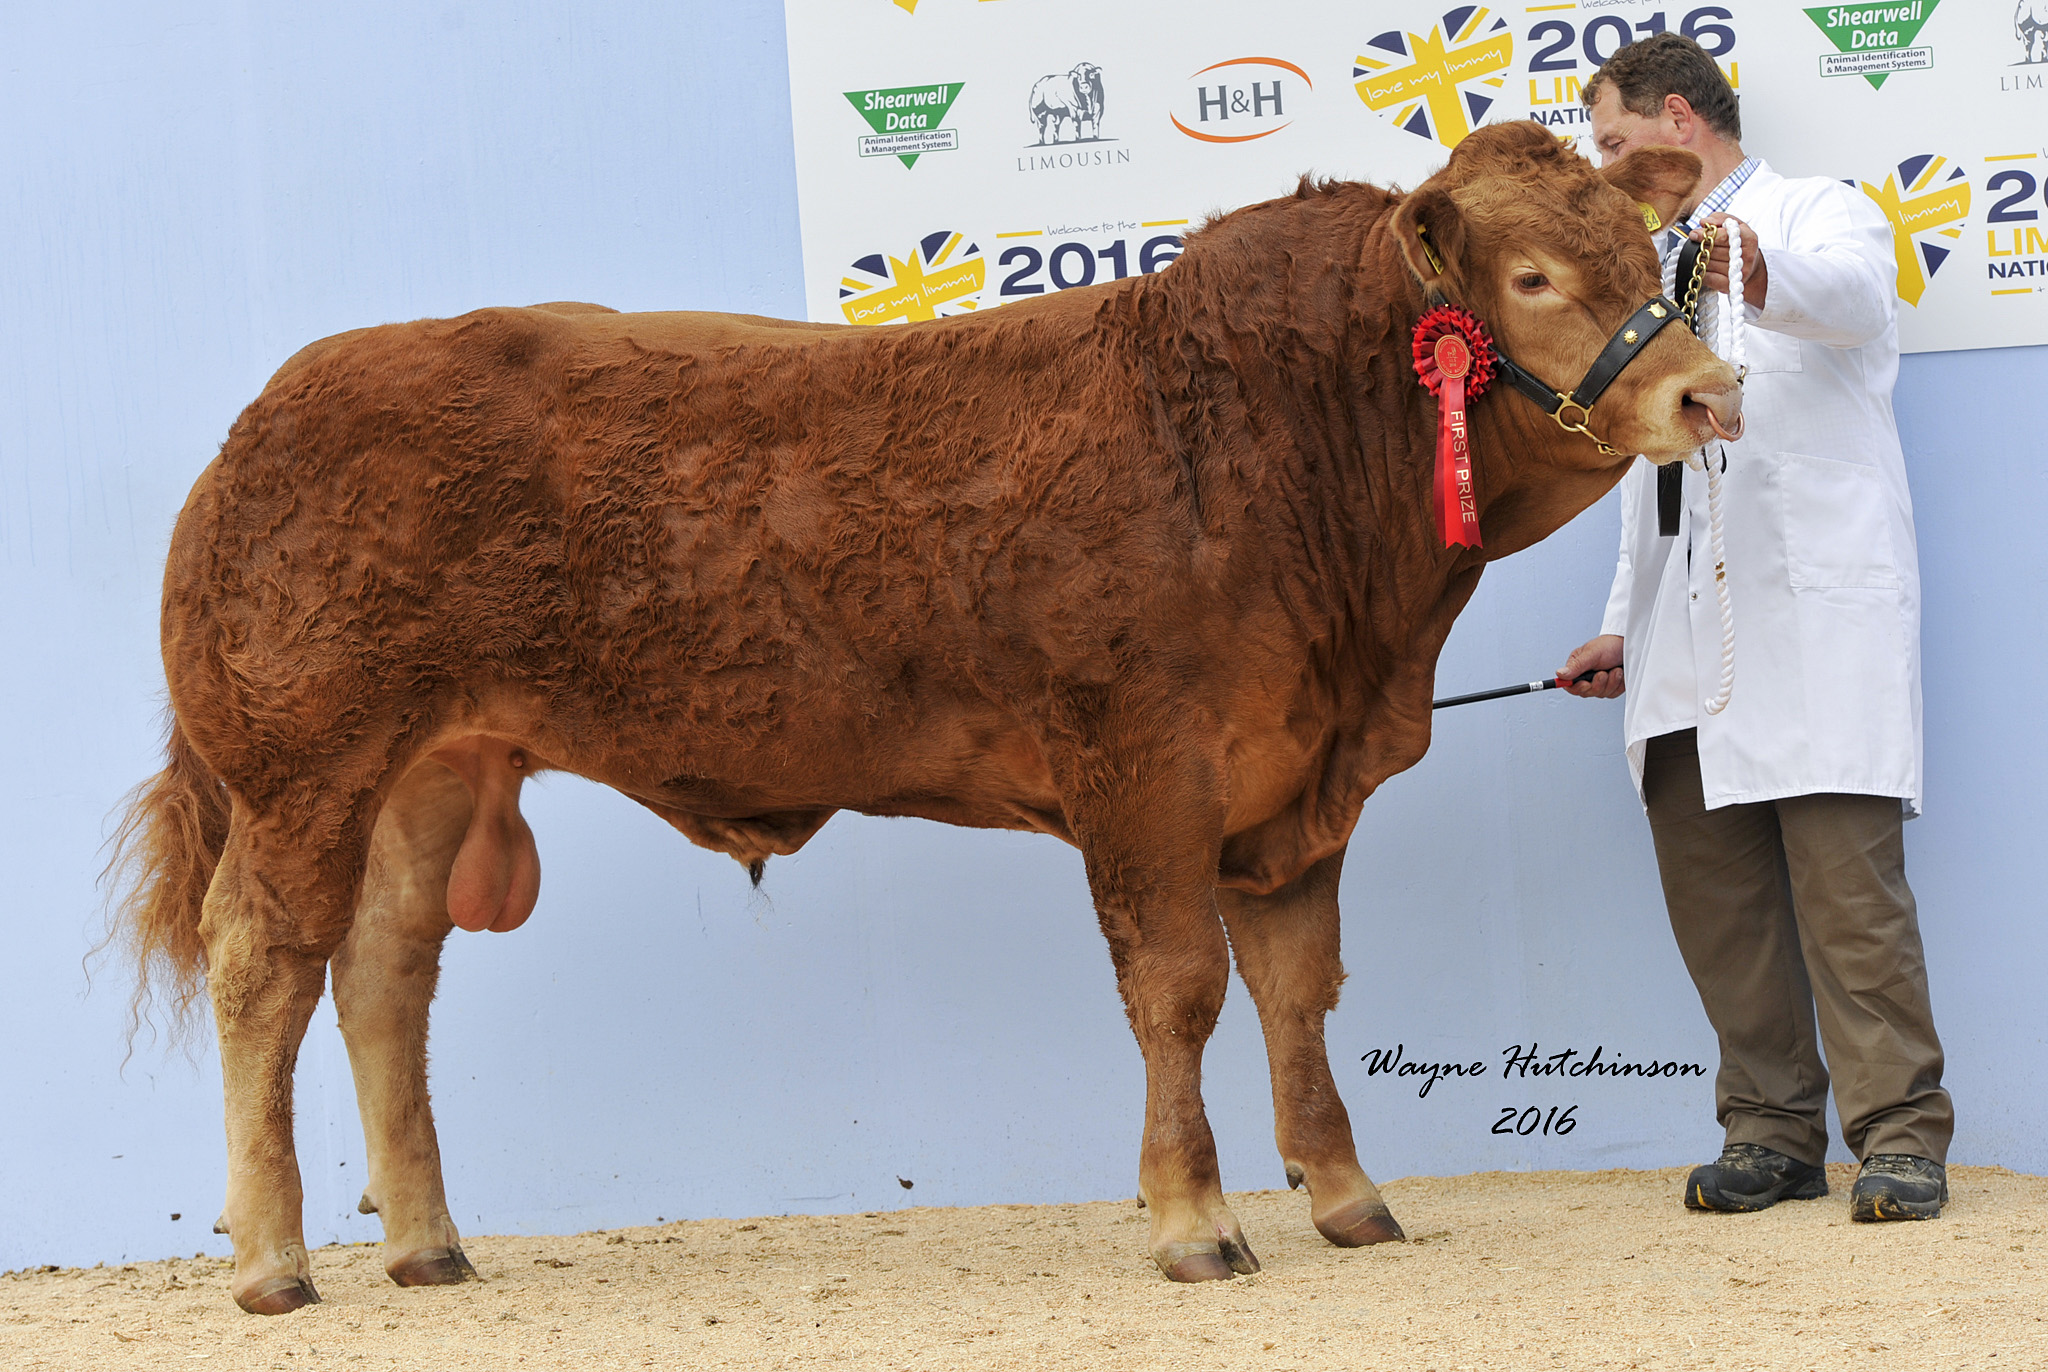 Foxhillfarm Louisvuitton - 1st Class 9d. Limousin National Show 2016. Wayne Hutchinson / www.farm-images.co.uk